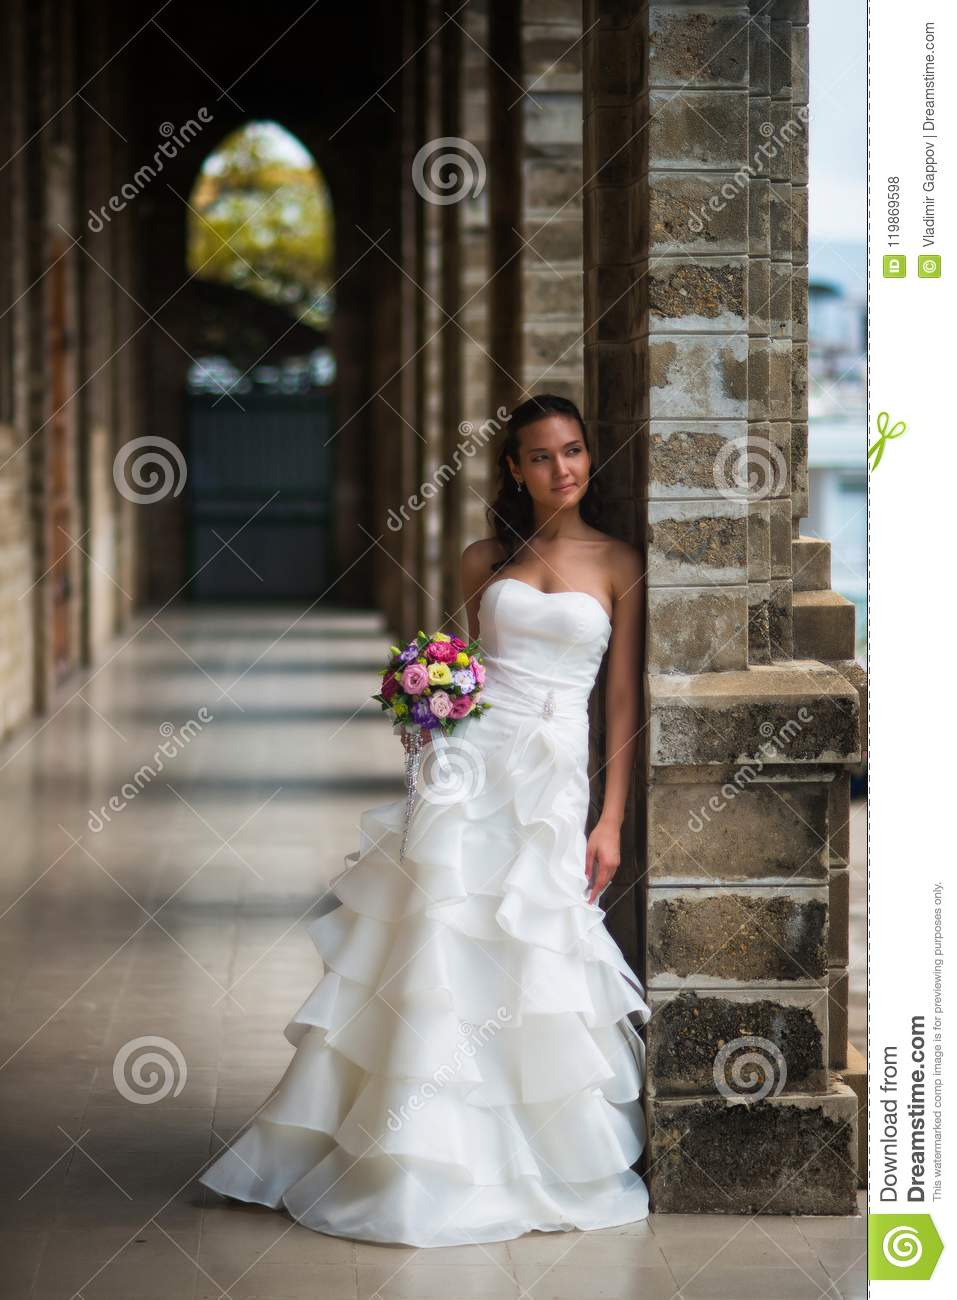 Bride stands in a gallery of stone walls in a beautiful white wedding dress with a bouquet of flowers and looks away